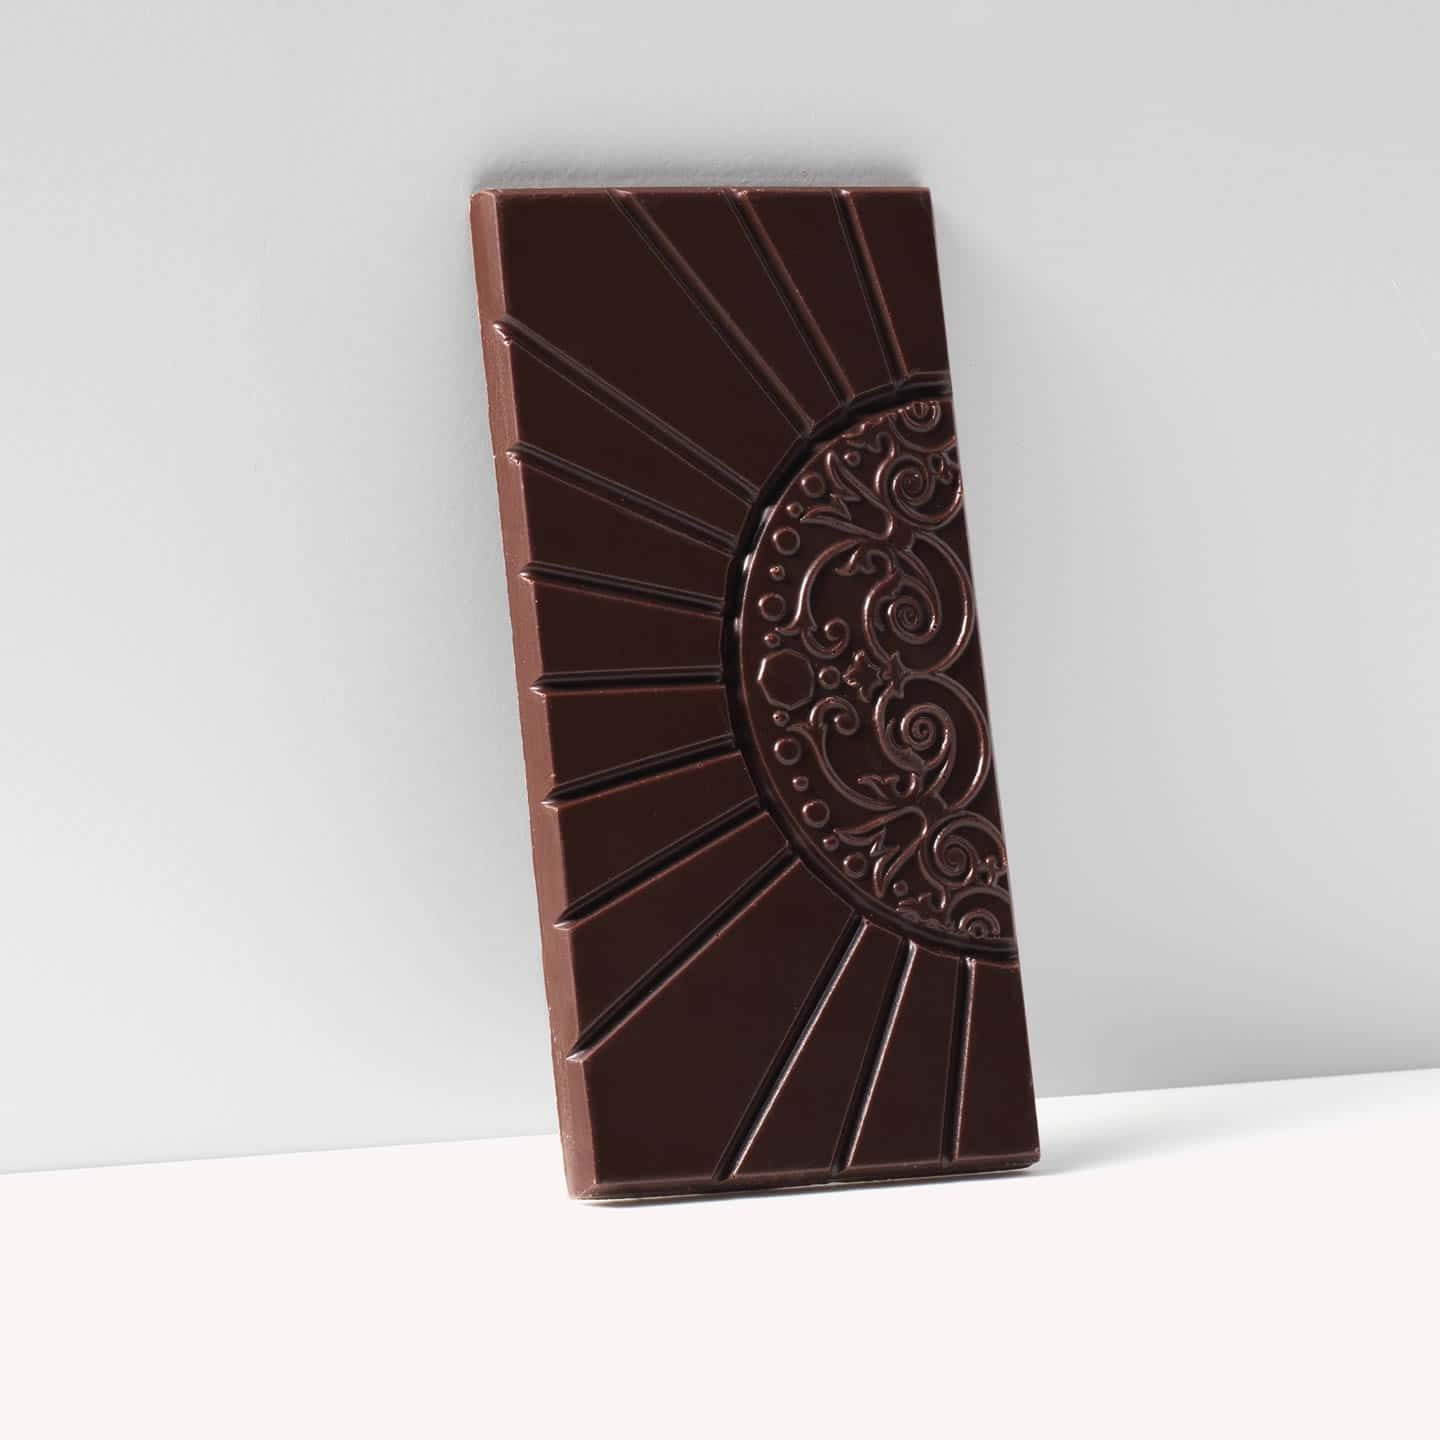 Tablette Chocolat Noir 75% Grand Cru origine Cameroun 75g Bean to Bar